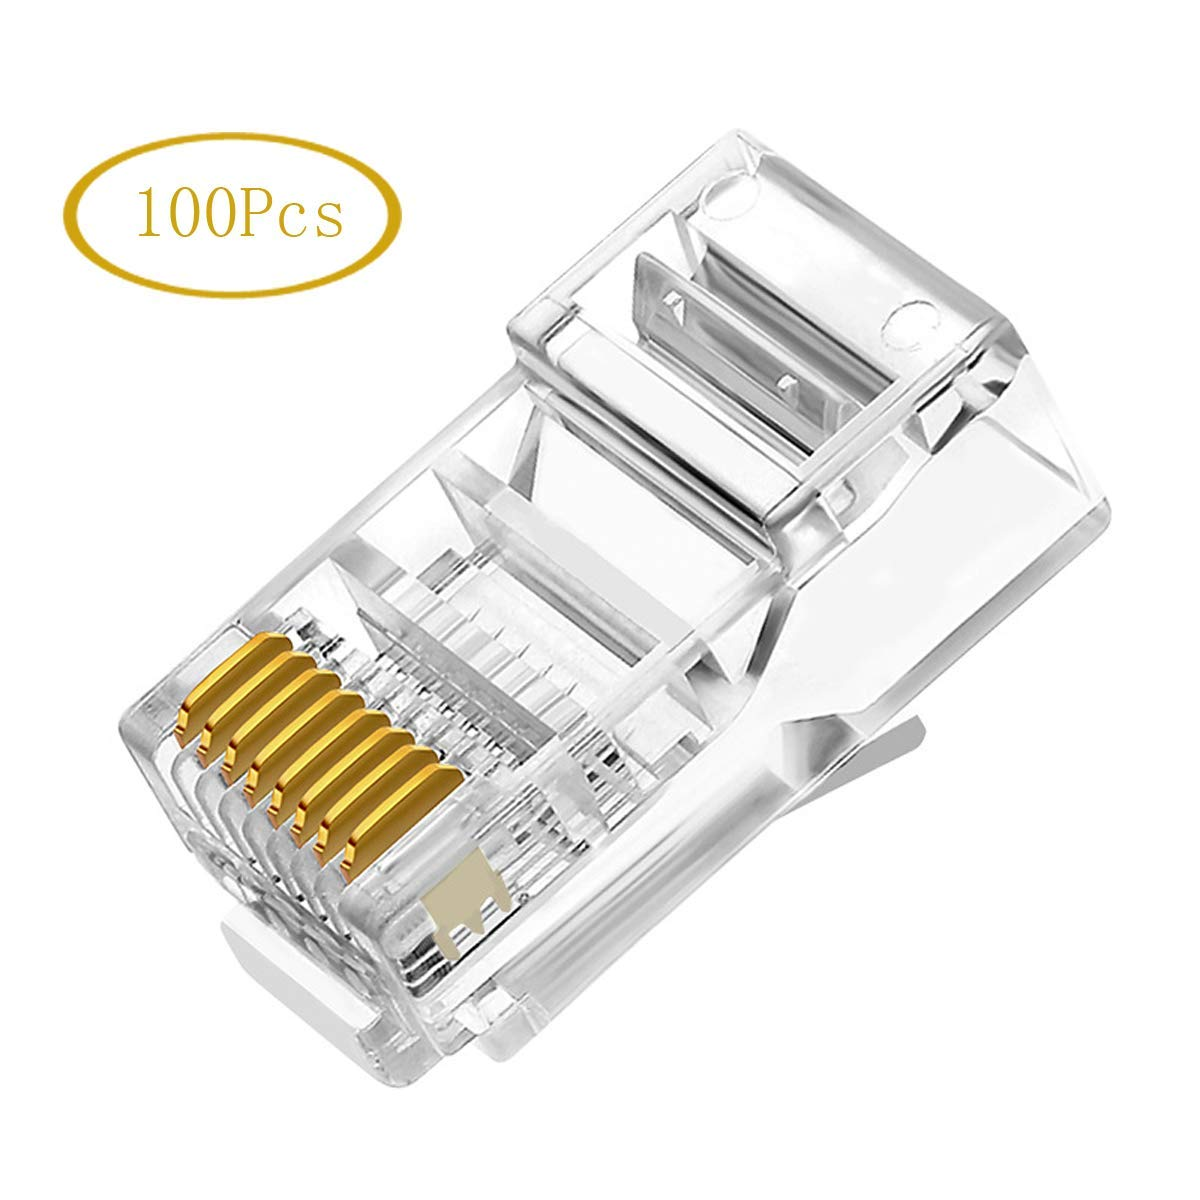 RJ45 Connector - 100PCS Ethernet Cable Crimp Ends 8P8C UTP Network Plug for CAT5 CAT5E CAT6 Solid Wire and Stranded Cable - Solid Crystal Head - Transparent